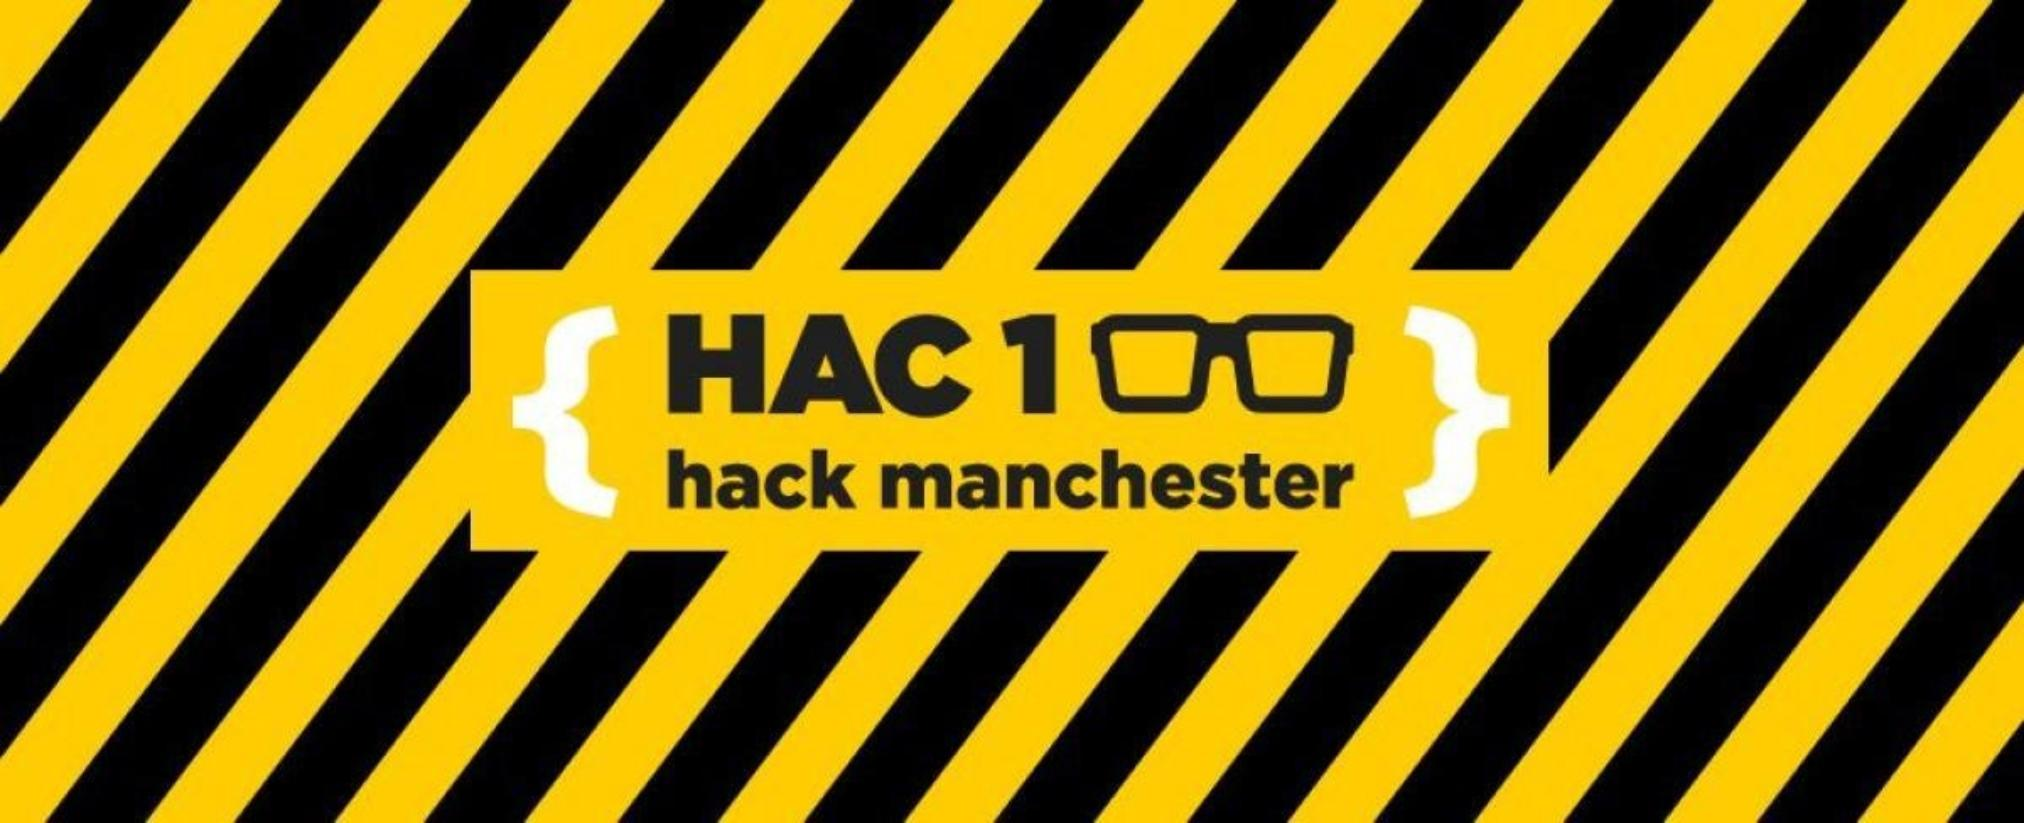 Hack Manchester yellow and black logo banner